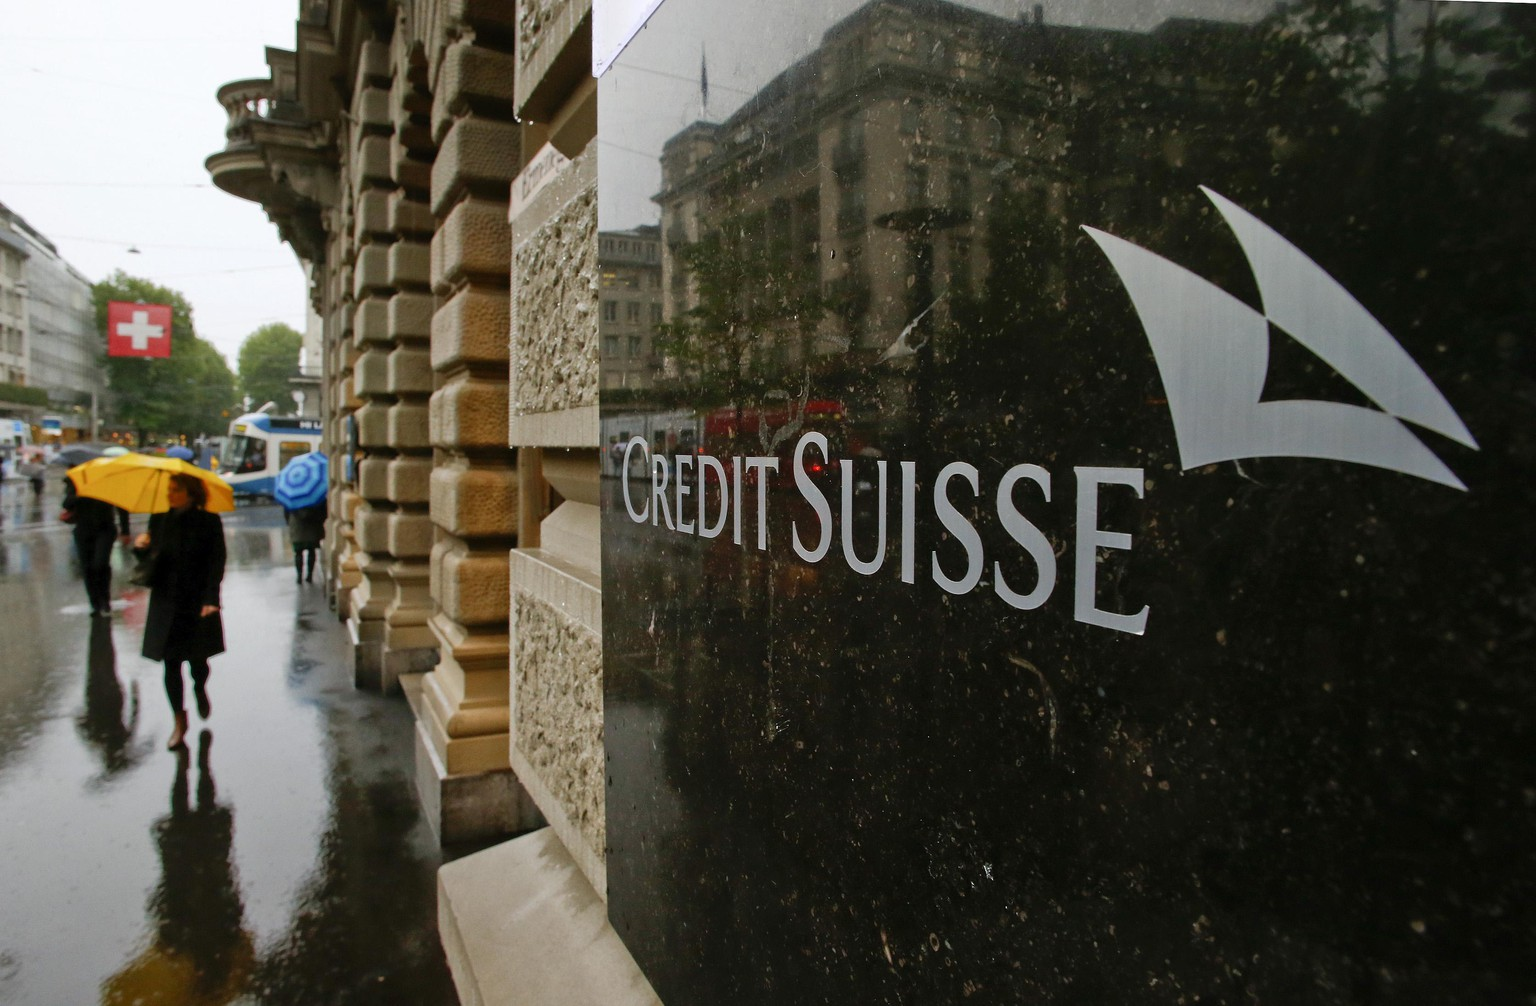 Swiss bank Credit Suisse logo is seen in front of its headquarters in Zurich May 2, 2014. Switzerland's finance minister Eveline Widmer-Schlumpf was set to meet Eric Holder, the U.S. attorney general, in Washington on Friday to discuss a tax-evasion probe into Swiss banks by U.S. authorities, a Swiss ministry spokesman said. U.S. prosecutors have been pushing for Credit Suisse, the biggest Swiss bank in the probe, to plead guilty as part of a resolution of the investigation, a person familiar with the matter said.      REUTERS/Arnd Wiegmann (SWITZERLAND - Tags: POLITICS BUSINESS CRIME LAW LOGO)